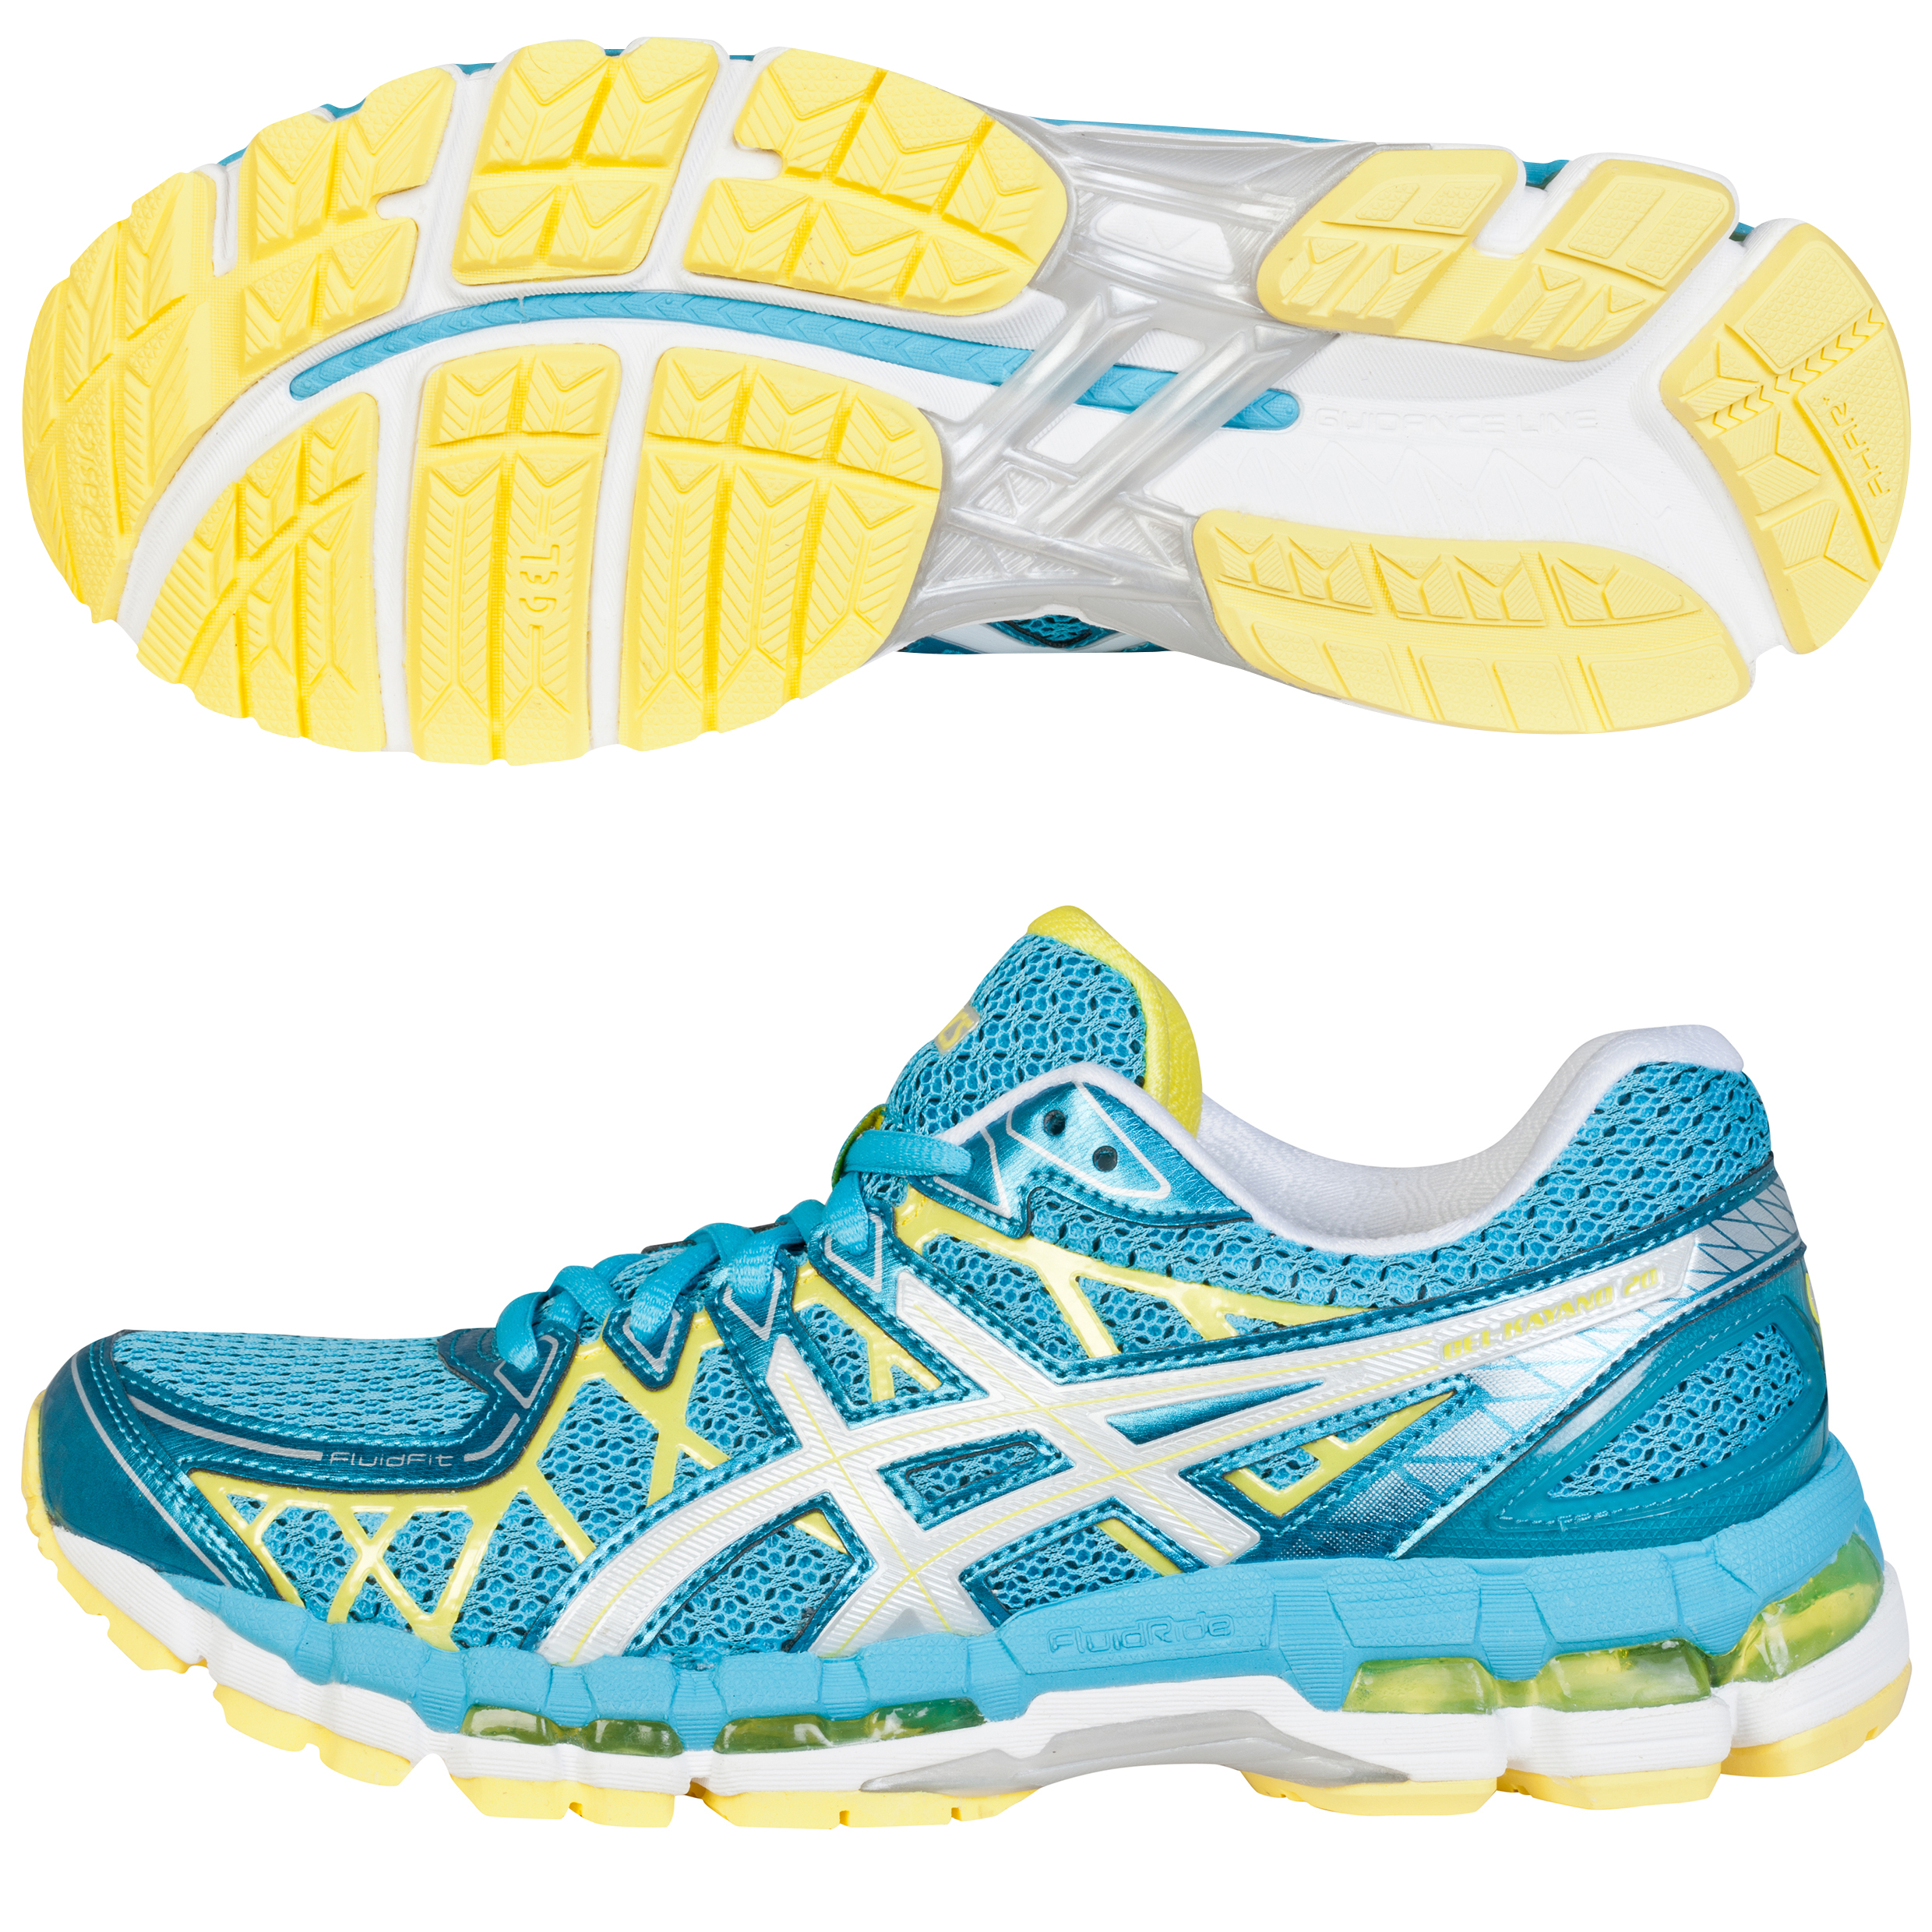 Asics Gel Kayano 20 Lt Blue